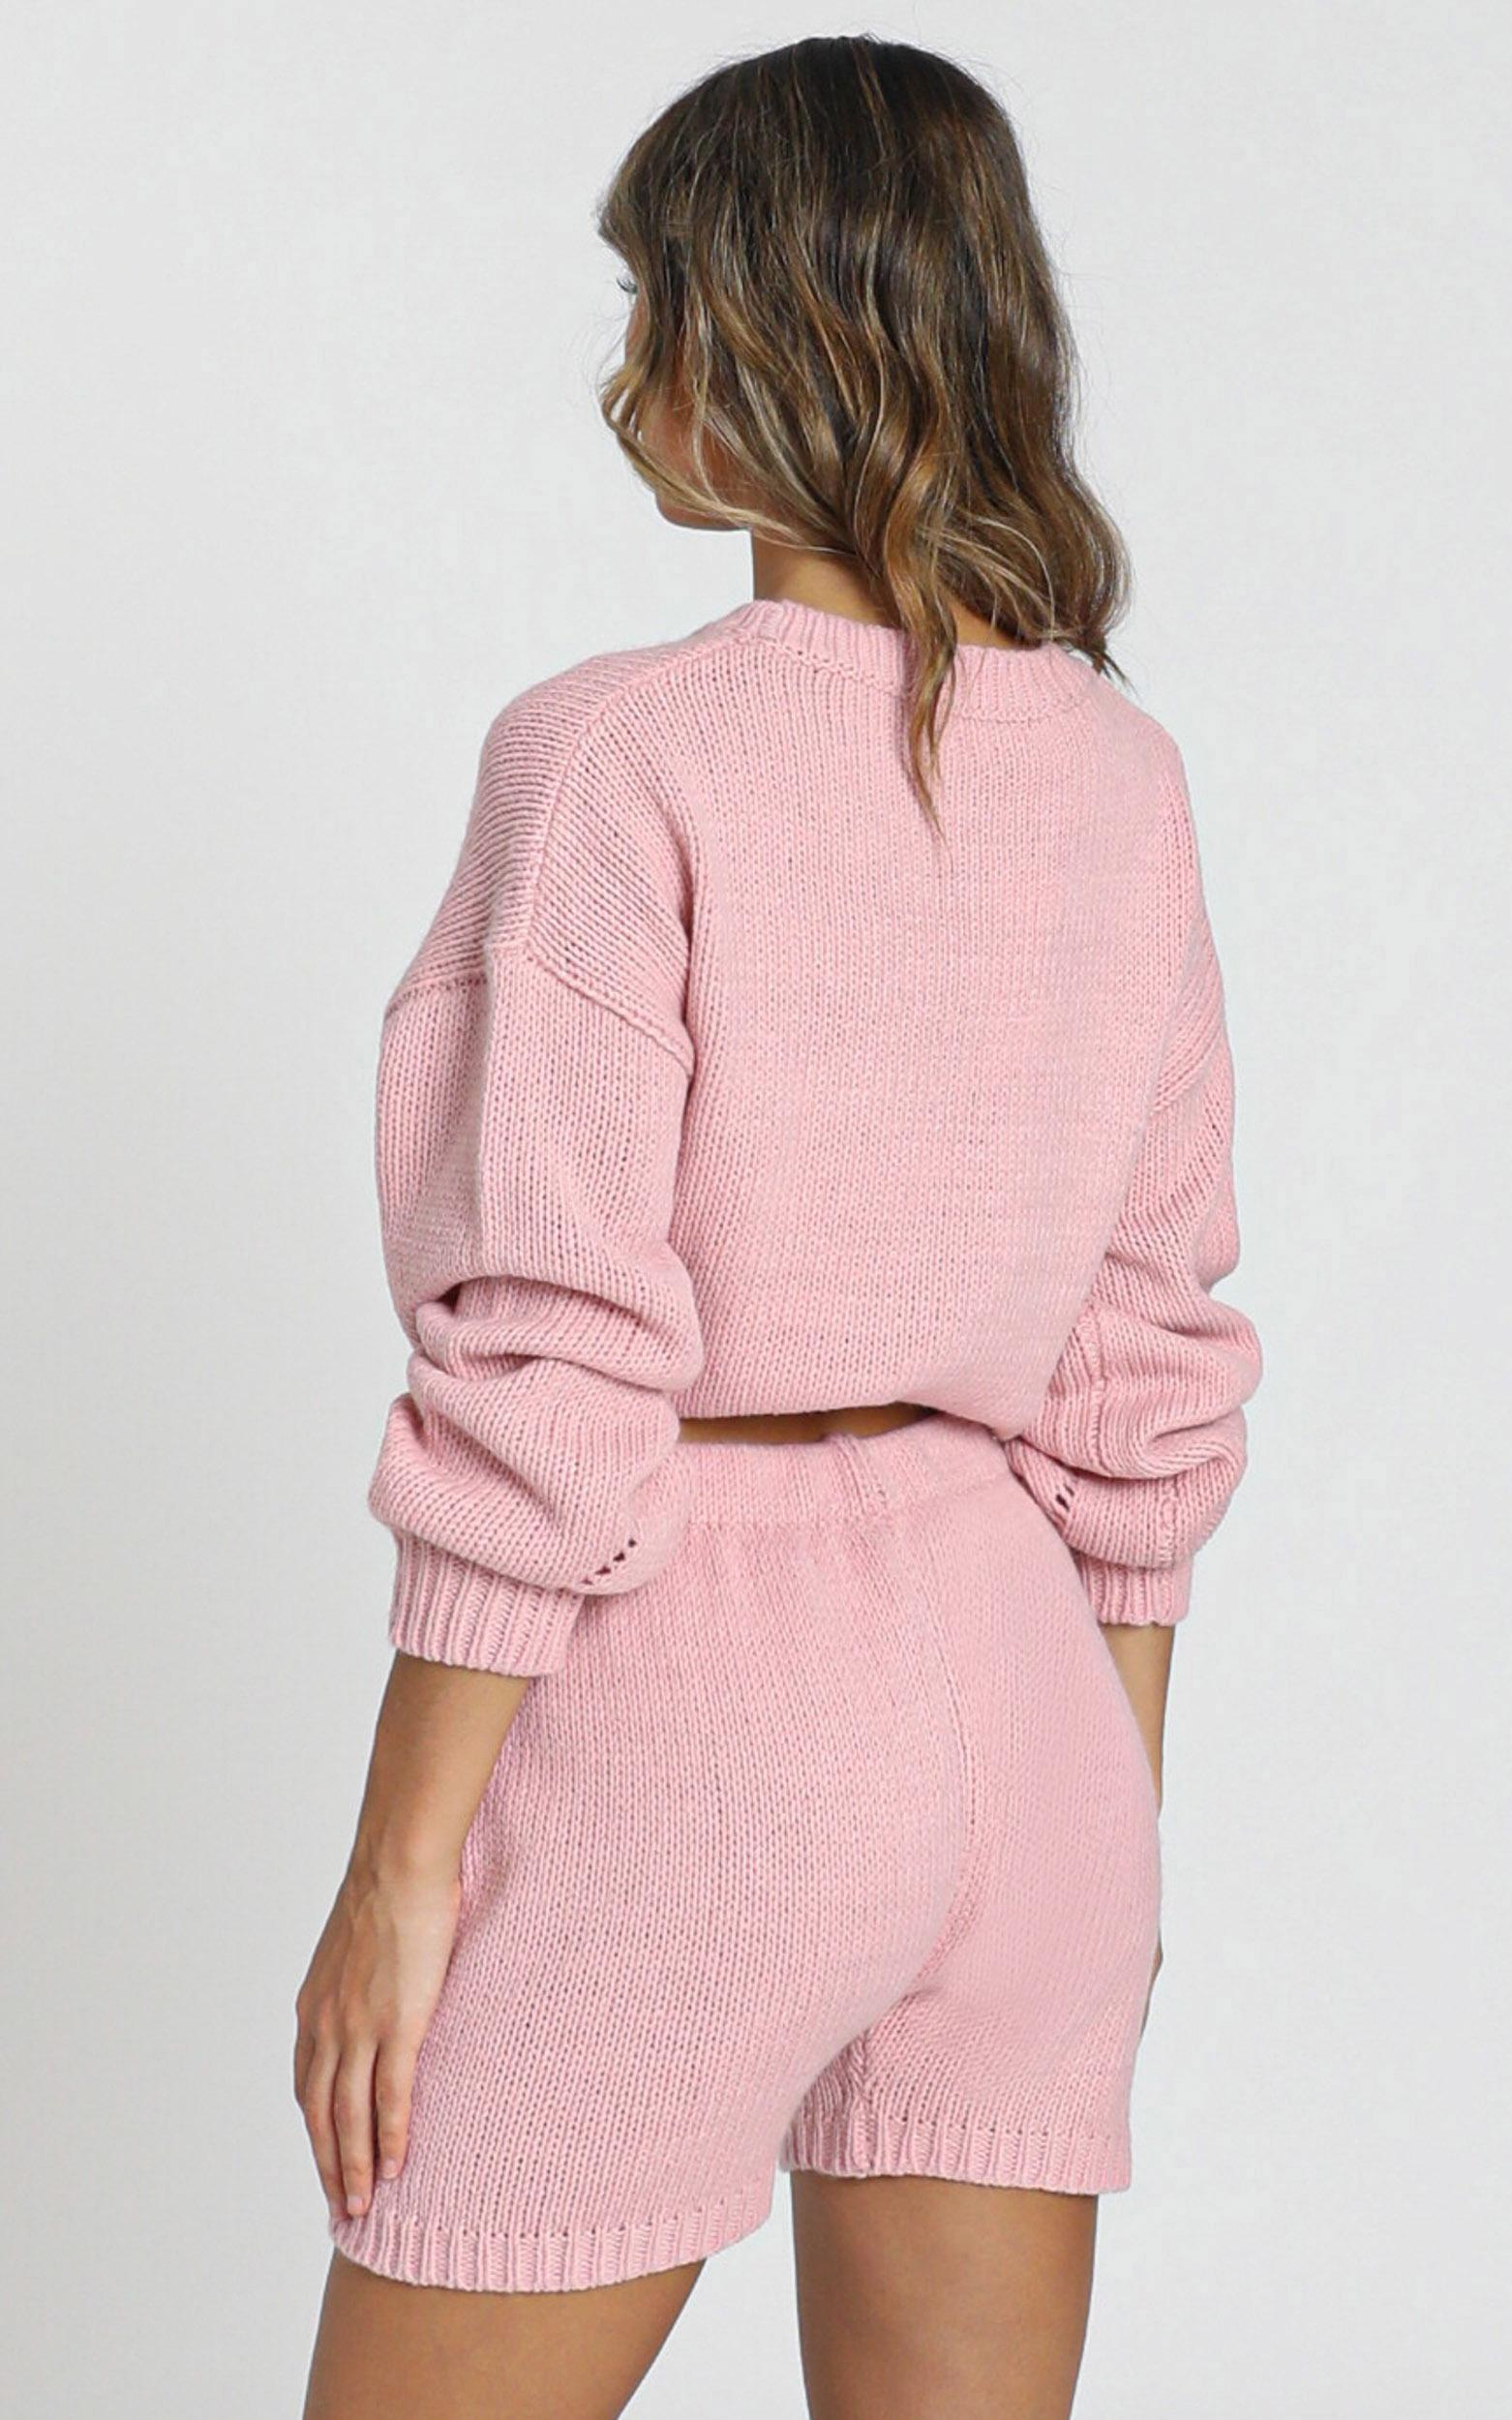 Loretta Knitted Shorts in rose - S, PNK1, hi-res image number null